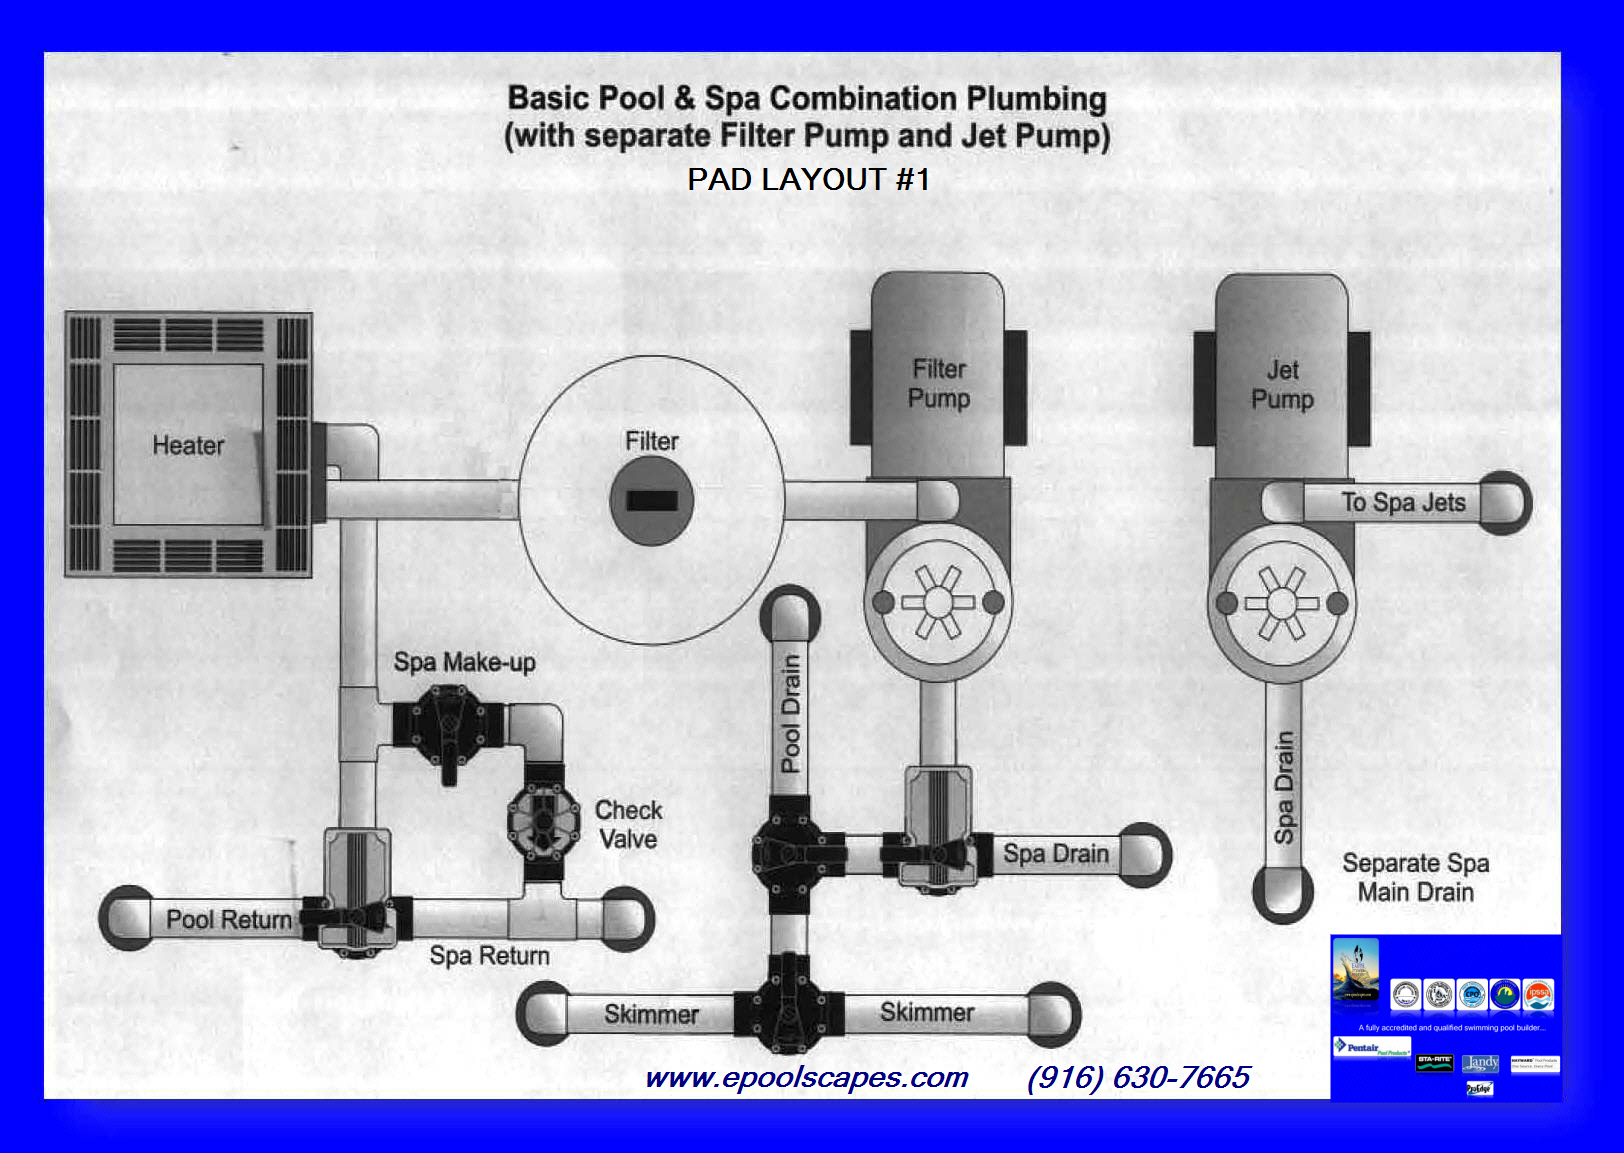 Swimming Pool Equipment Pad Layouts Plumbing Schematics Click Image To Enlarge